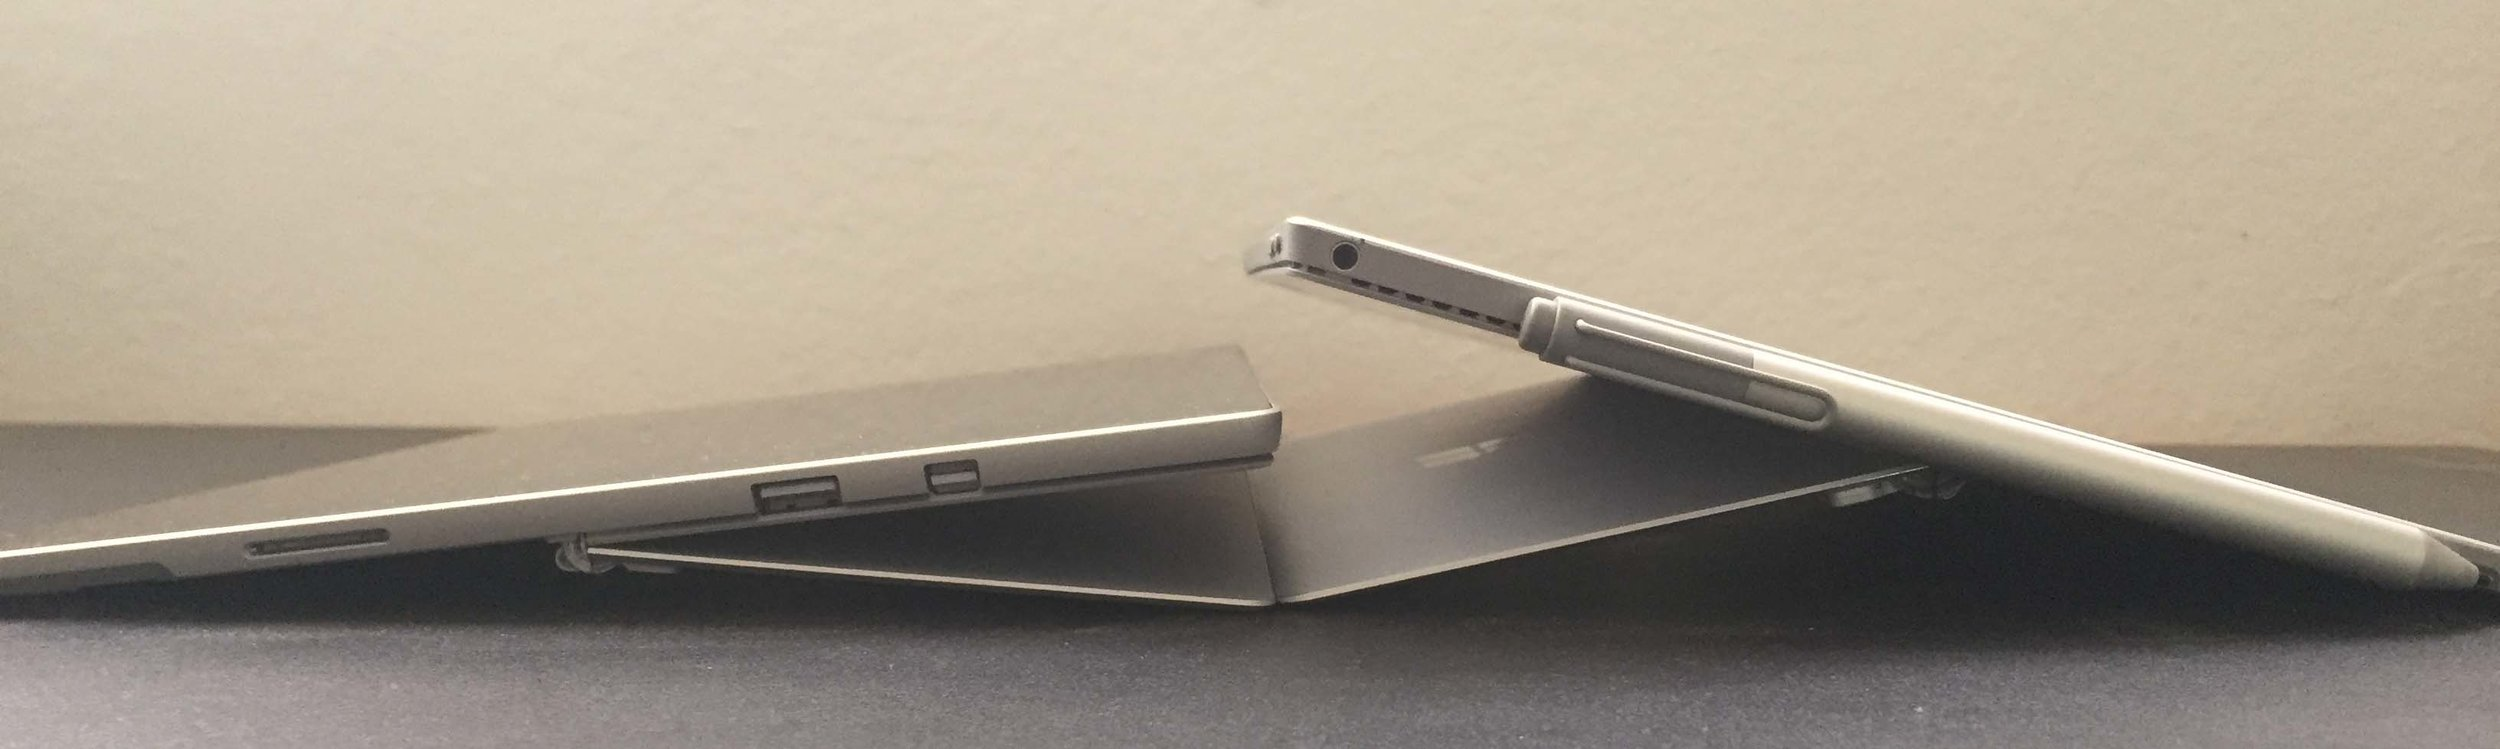 The new Surface Pro kickstand (left) offers 165 degree of recline, but I prefer the SP4's maximum inclination.